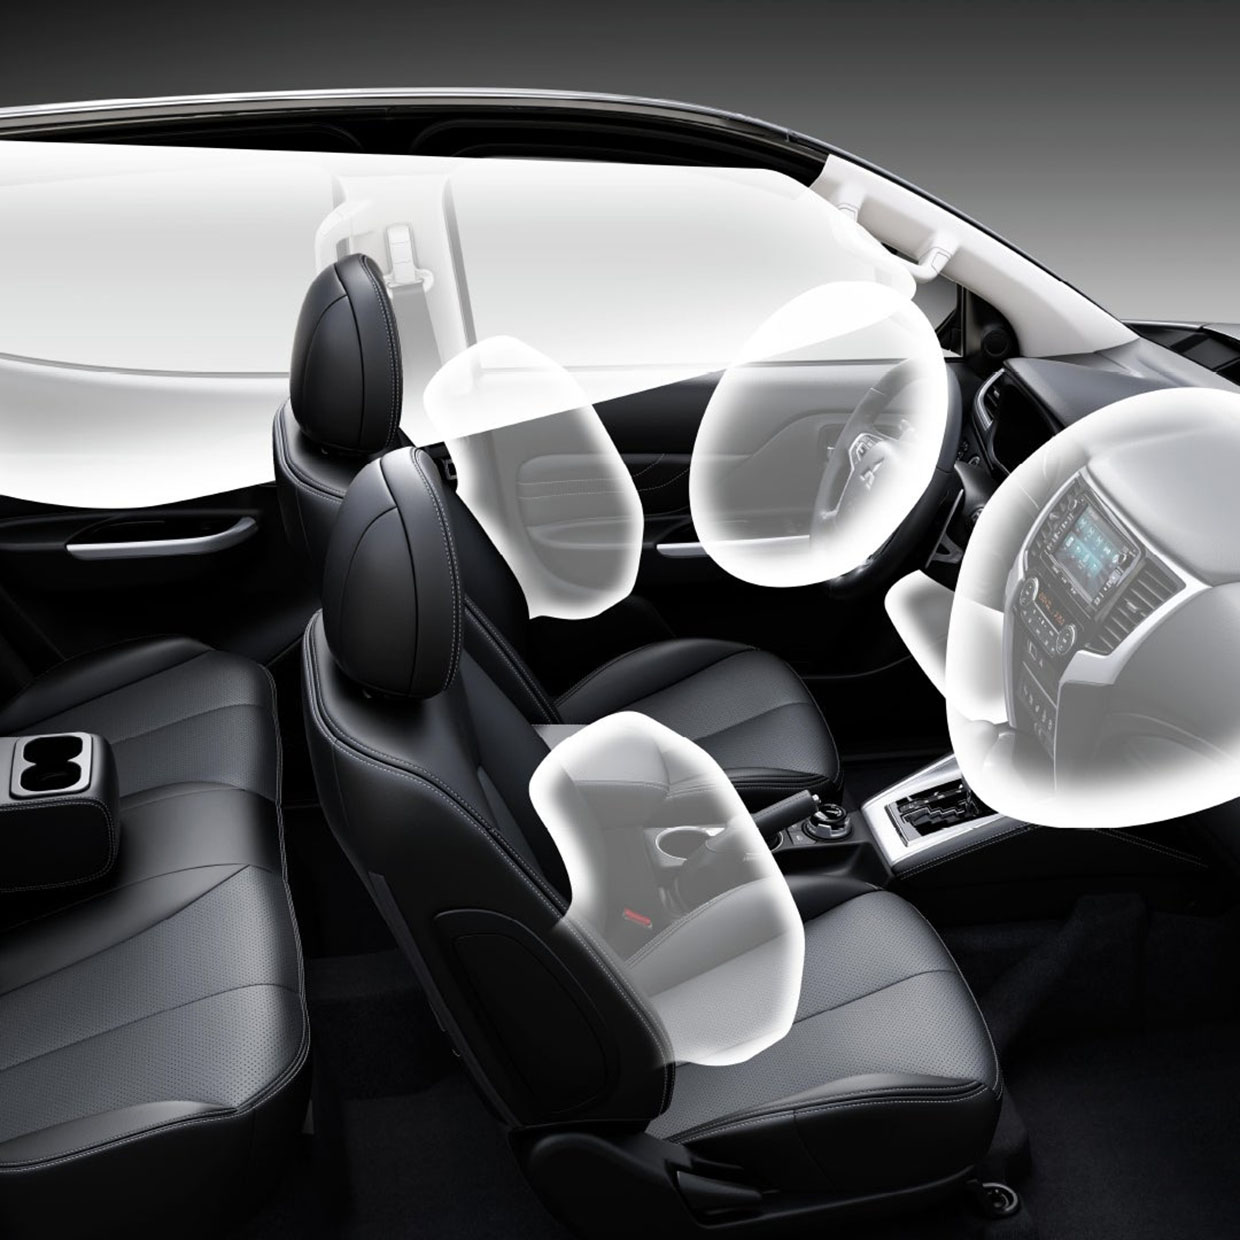 airbags 1 L200